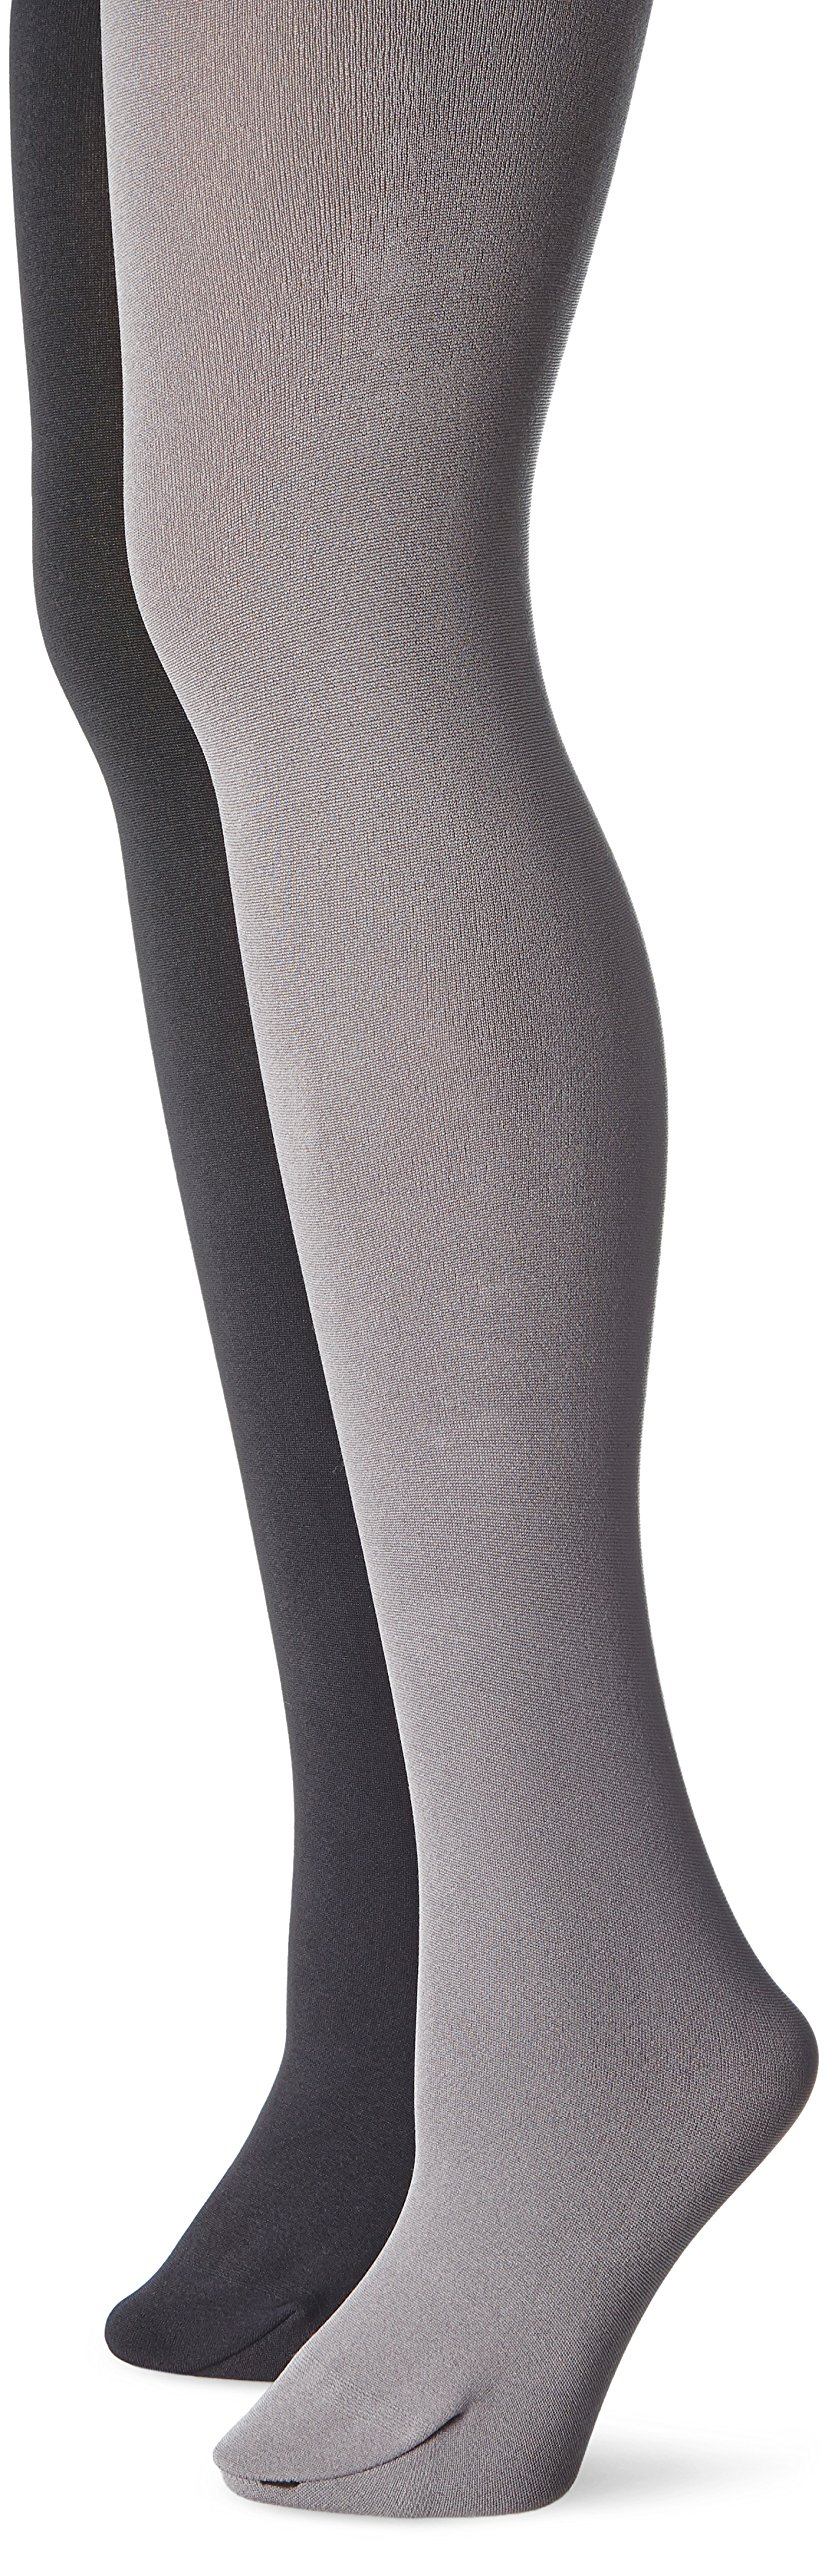 5ea094b94bd MUK LUKS womens not applicable Women s Fleece Lined 2-pair Pack Tights  product image